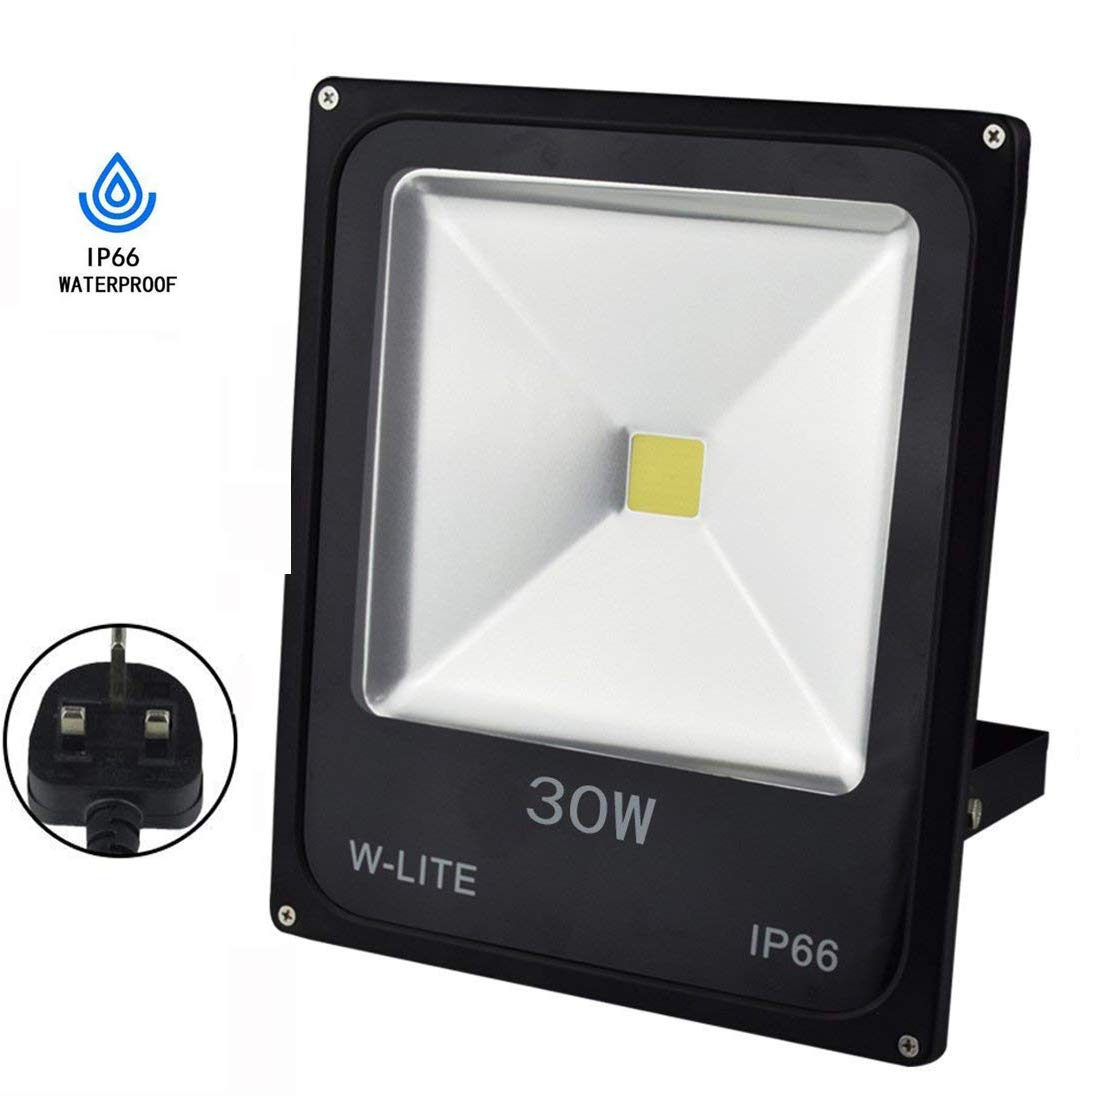 30W LED Flood Lights Outdoor Security Light, Waterproof Floodlight Lamp for Garden/Yard/Lawn/Patio/Porch, 6000K Daylight White, 250W Equivalent,86-265V Input, Aluminum(with UK 3-Plug) [Energy Class A++] W-LITE